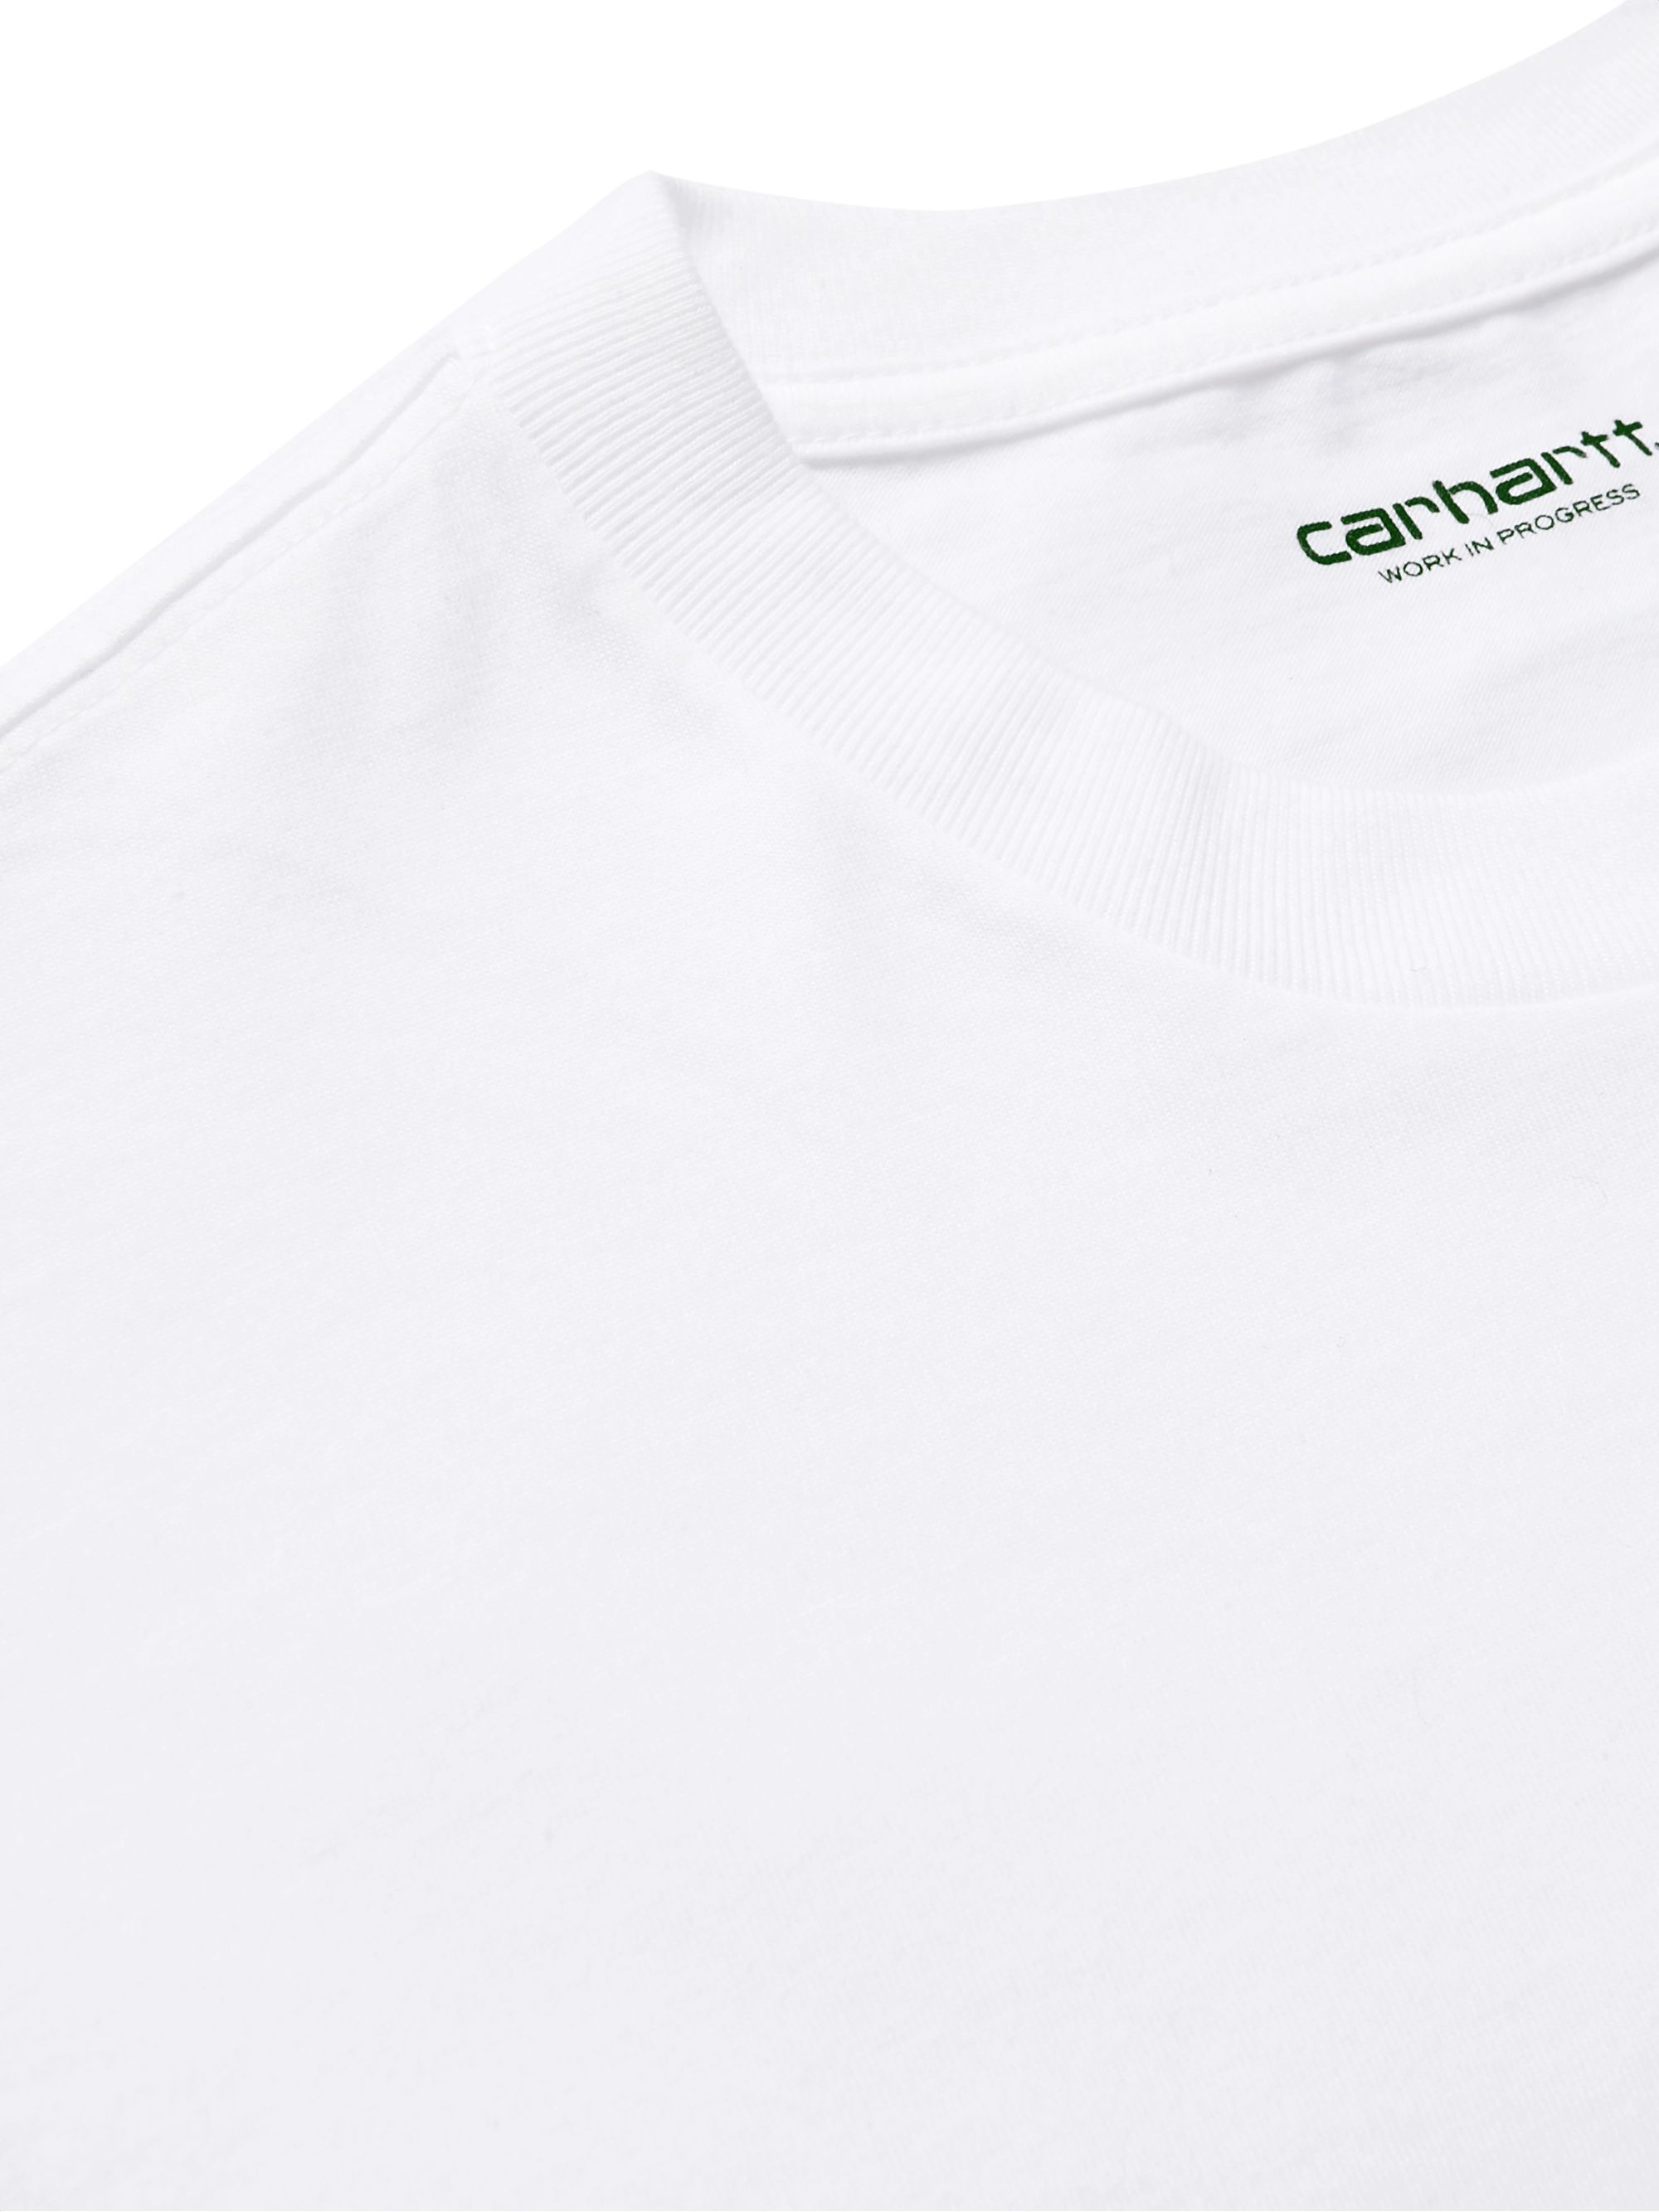 Carhartt WIP Embroidered Cotton-Jersey T-Shirt